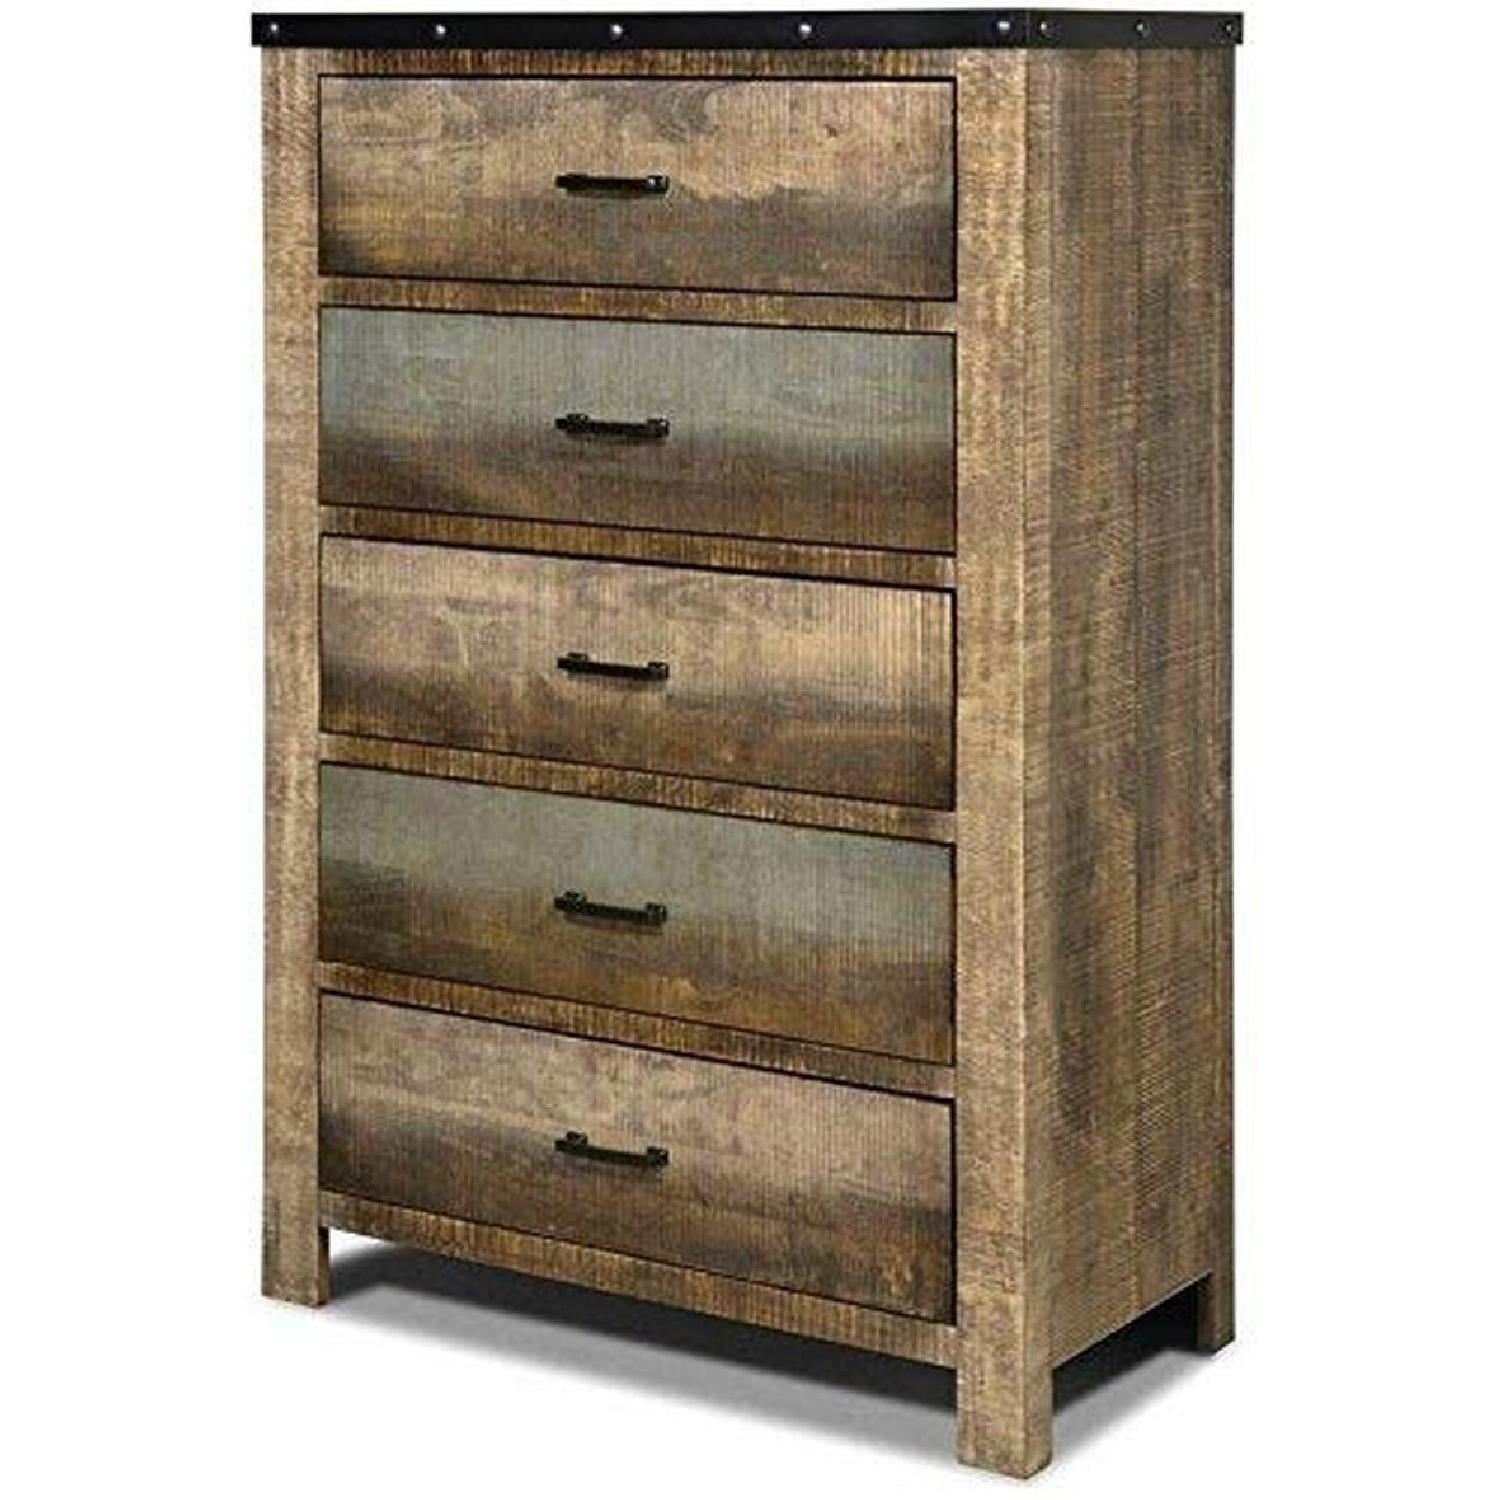 Rustic Style Chest in Solid Wood Multi-Tonal Finish - image-3